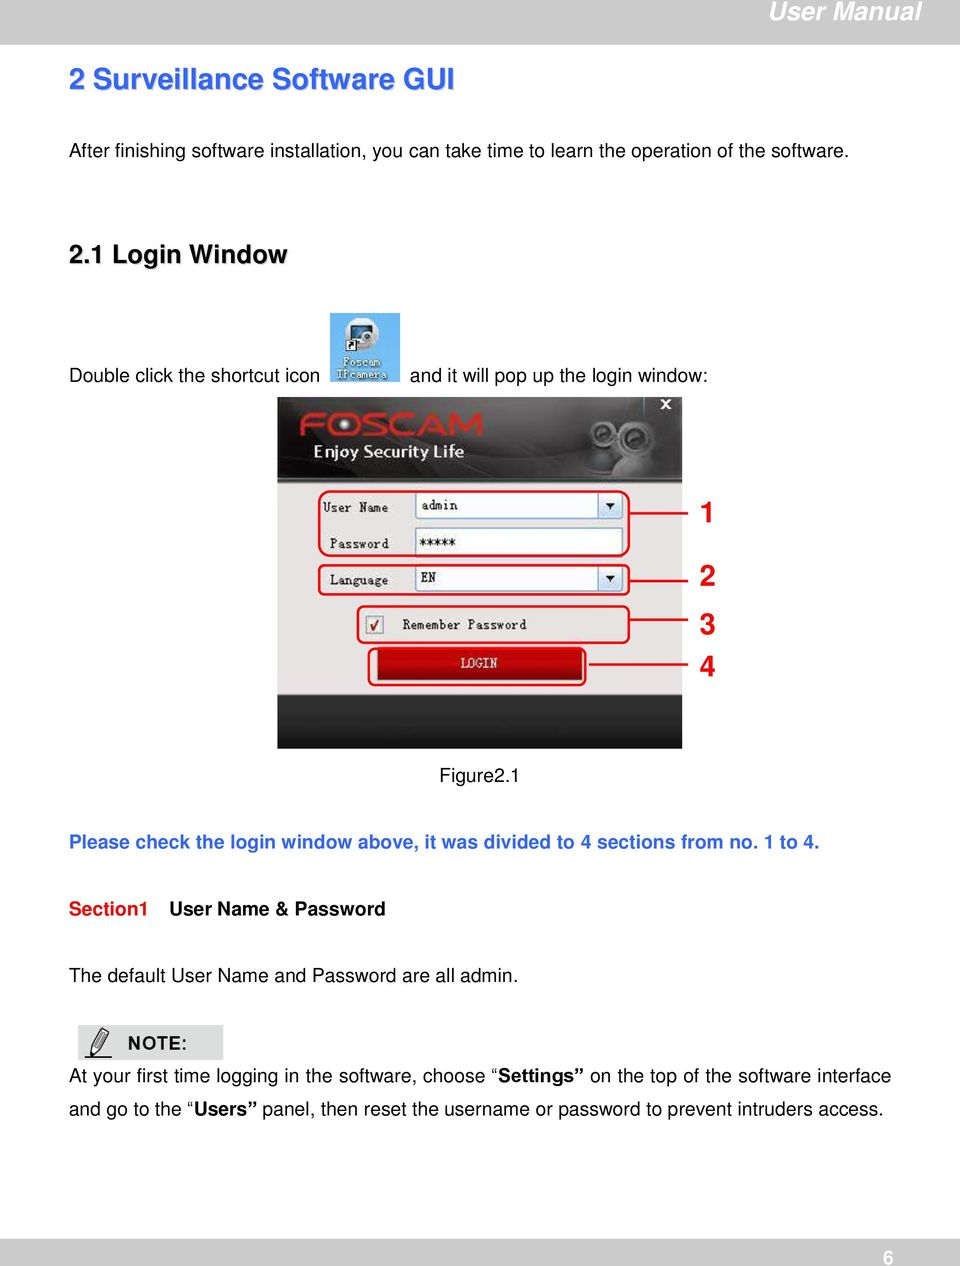 1 Please check the login window above, it was divided to 4 sections from no. 1 to 4.